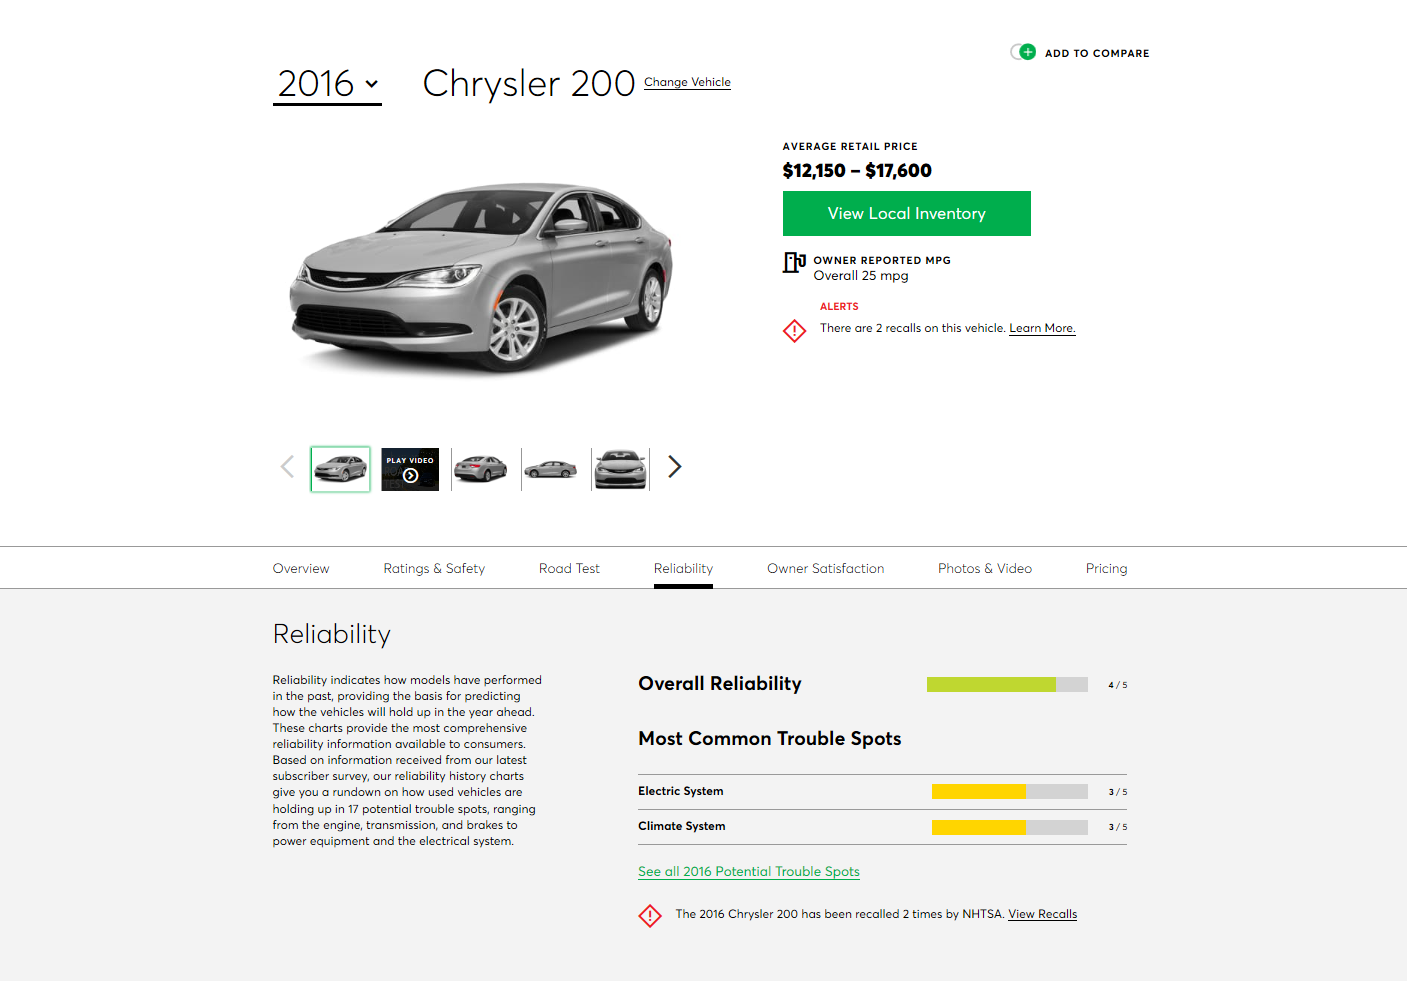 2015 Chrysler 200 Reliability is Trash Compared to 2016 model - Consumer Reports-56846841684.png